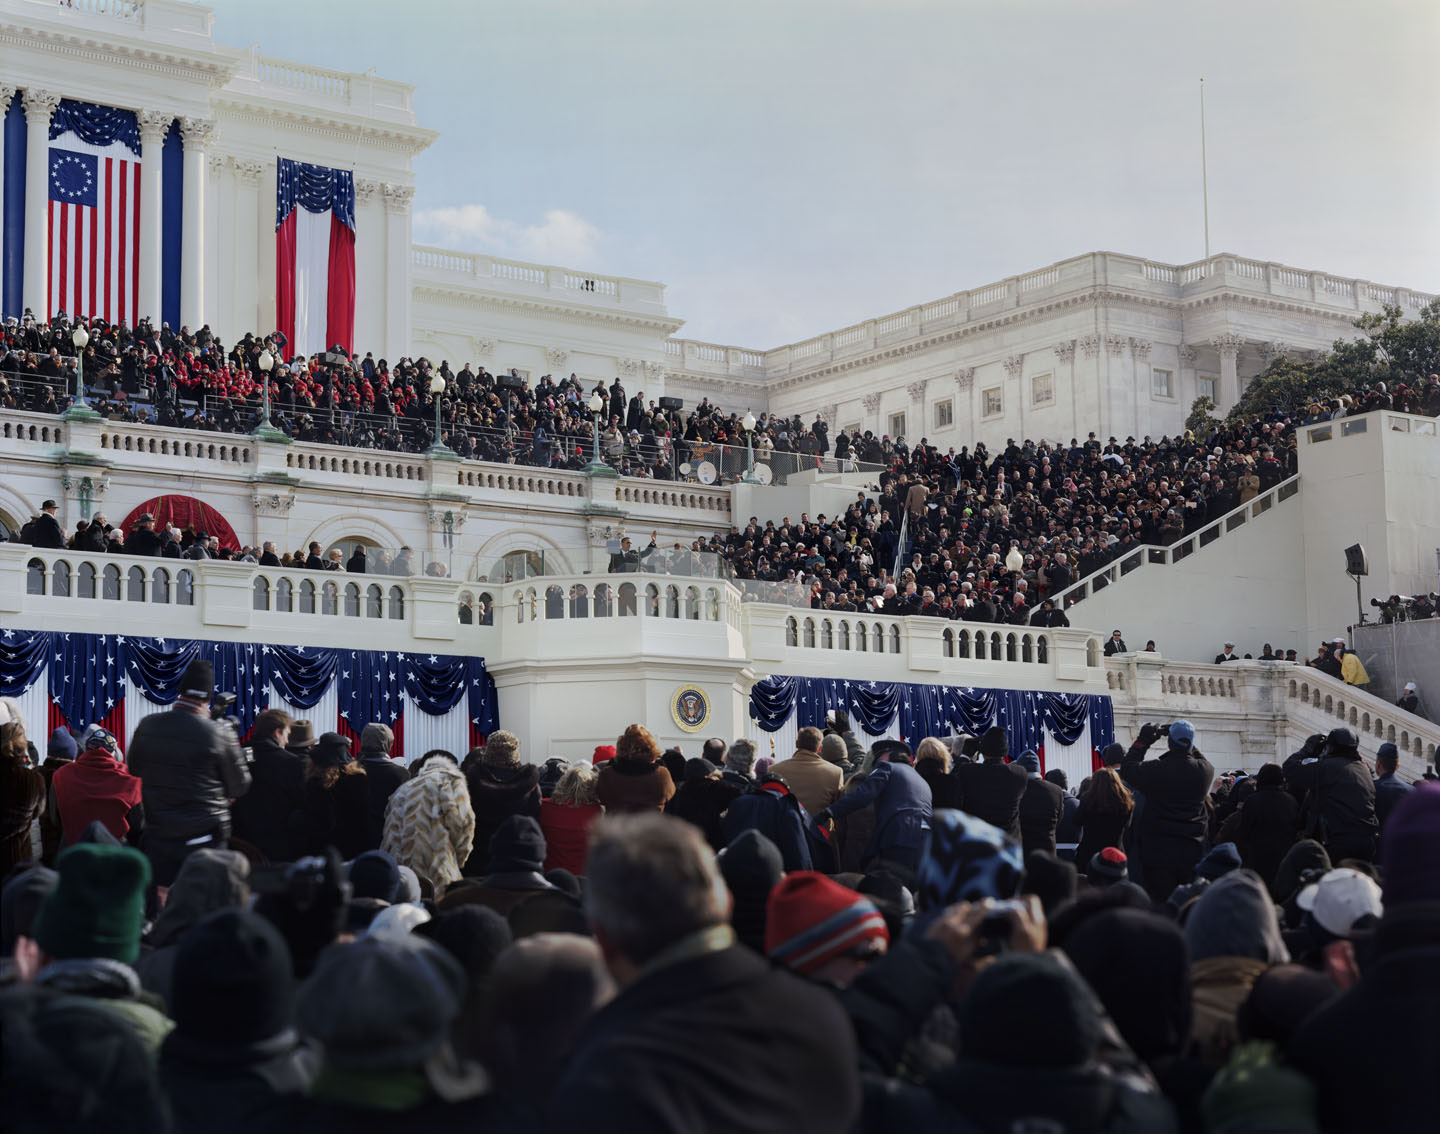 Jerry Spagnoli - Obama Inauguration (After Swearing In)